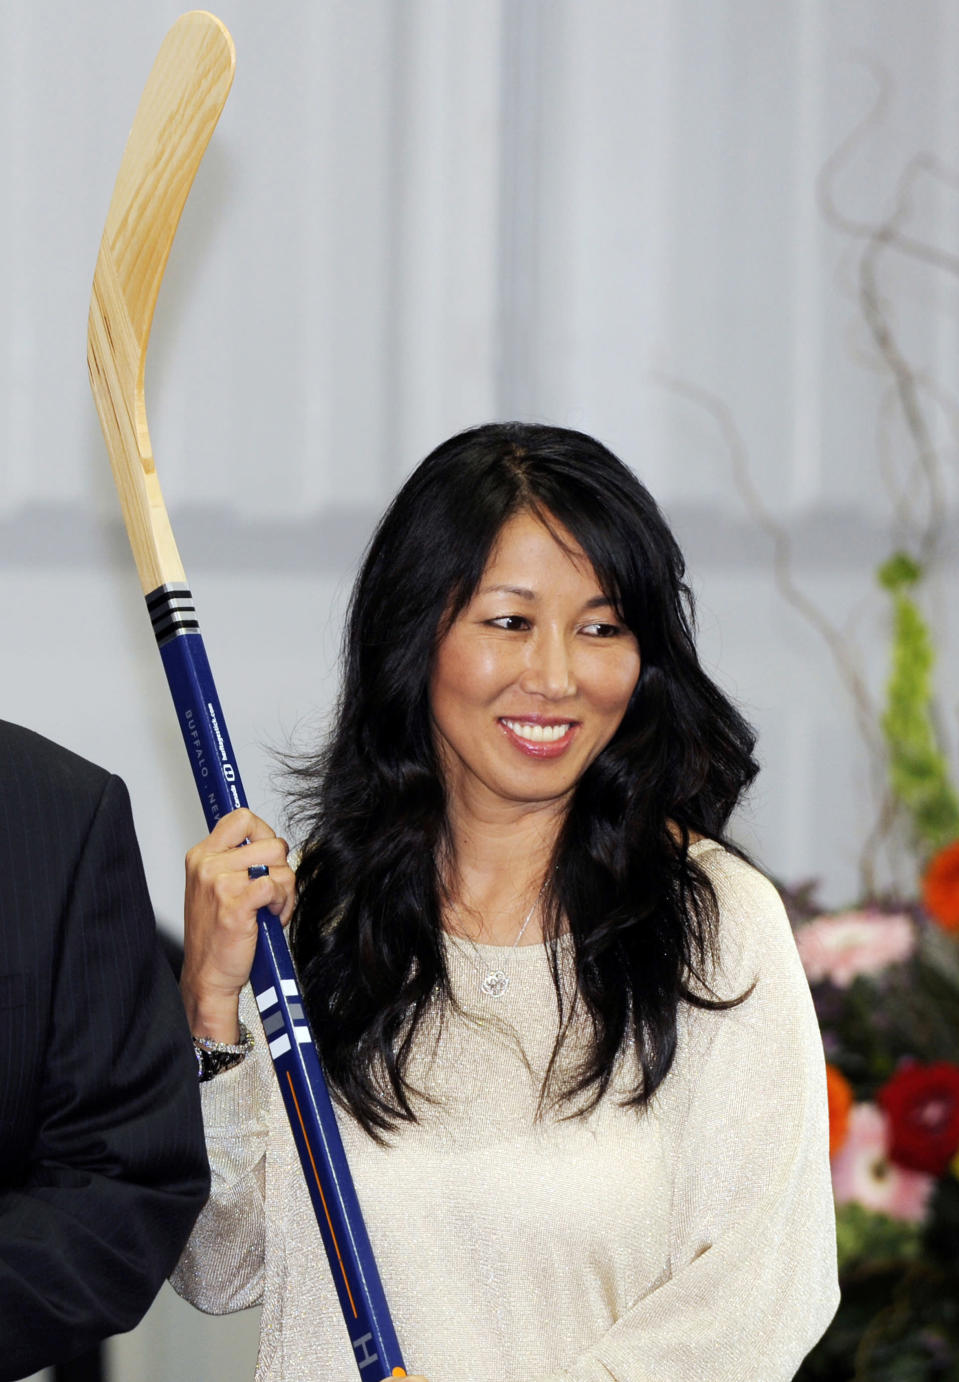 FILE - In this April 13, 2013, file photo, Kim Pegula poses during groundbreaking ceremonies at First Niagara Center in Buffalo, N.Y. The NHL is finally shrugging off its reputation as being a 'men-only club with the Maple Leafs hiring Hayley Wickenheiser to a player development role, and Kim Pegula taking over as president of the Buffalo Sabres. (AP Photo/Gary Wiepert, File)